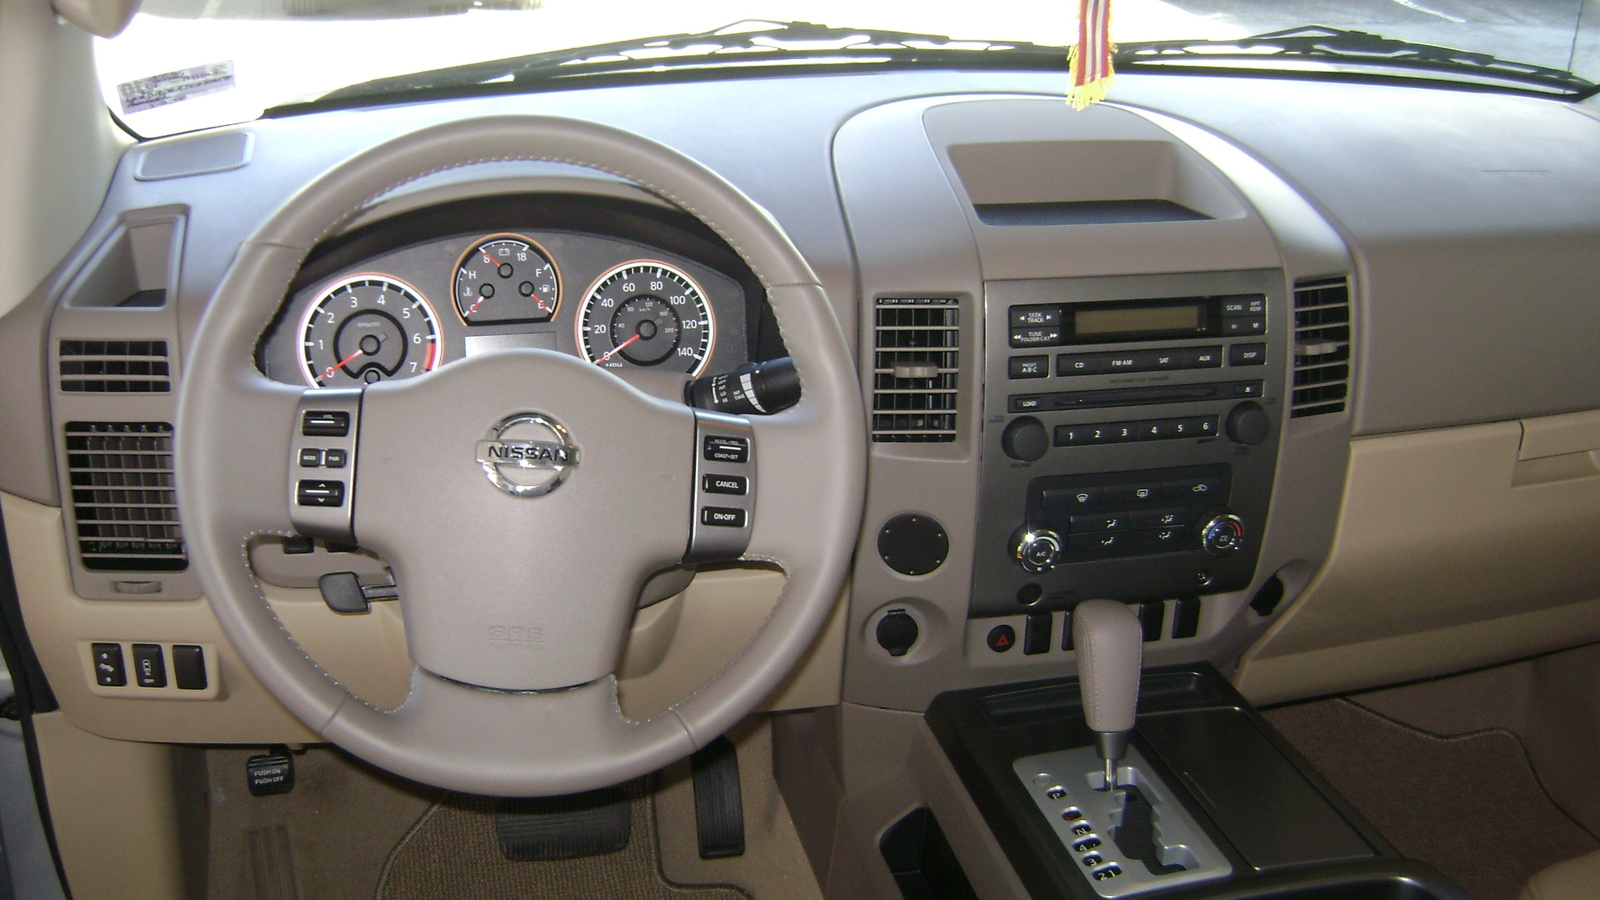 2004 nissan titan extended cab interior images hd cars wallpaper 2004 nissan titan le interior gallery hd cars wallpaper 2004 nissan titan le interior image collections vanachro Choice Image